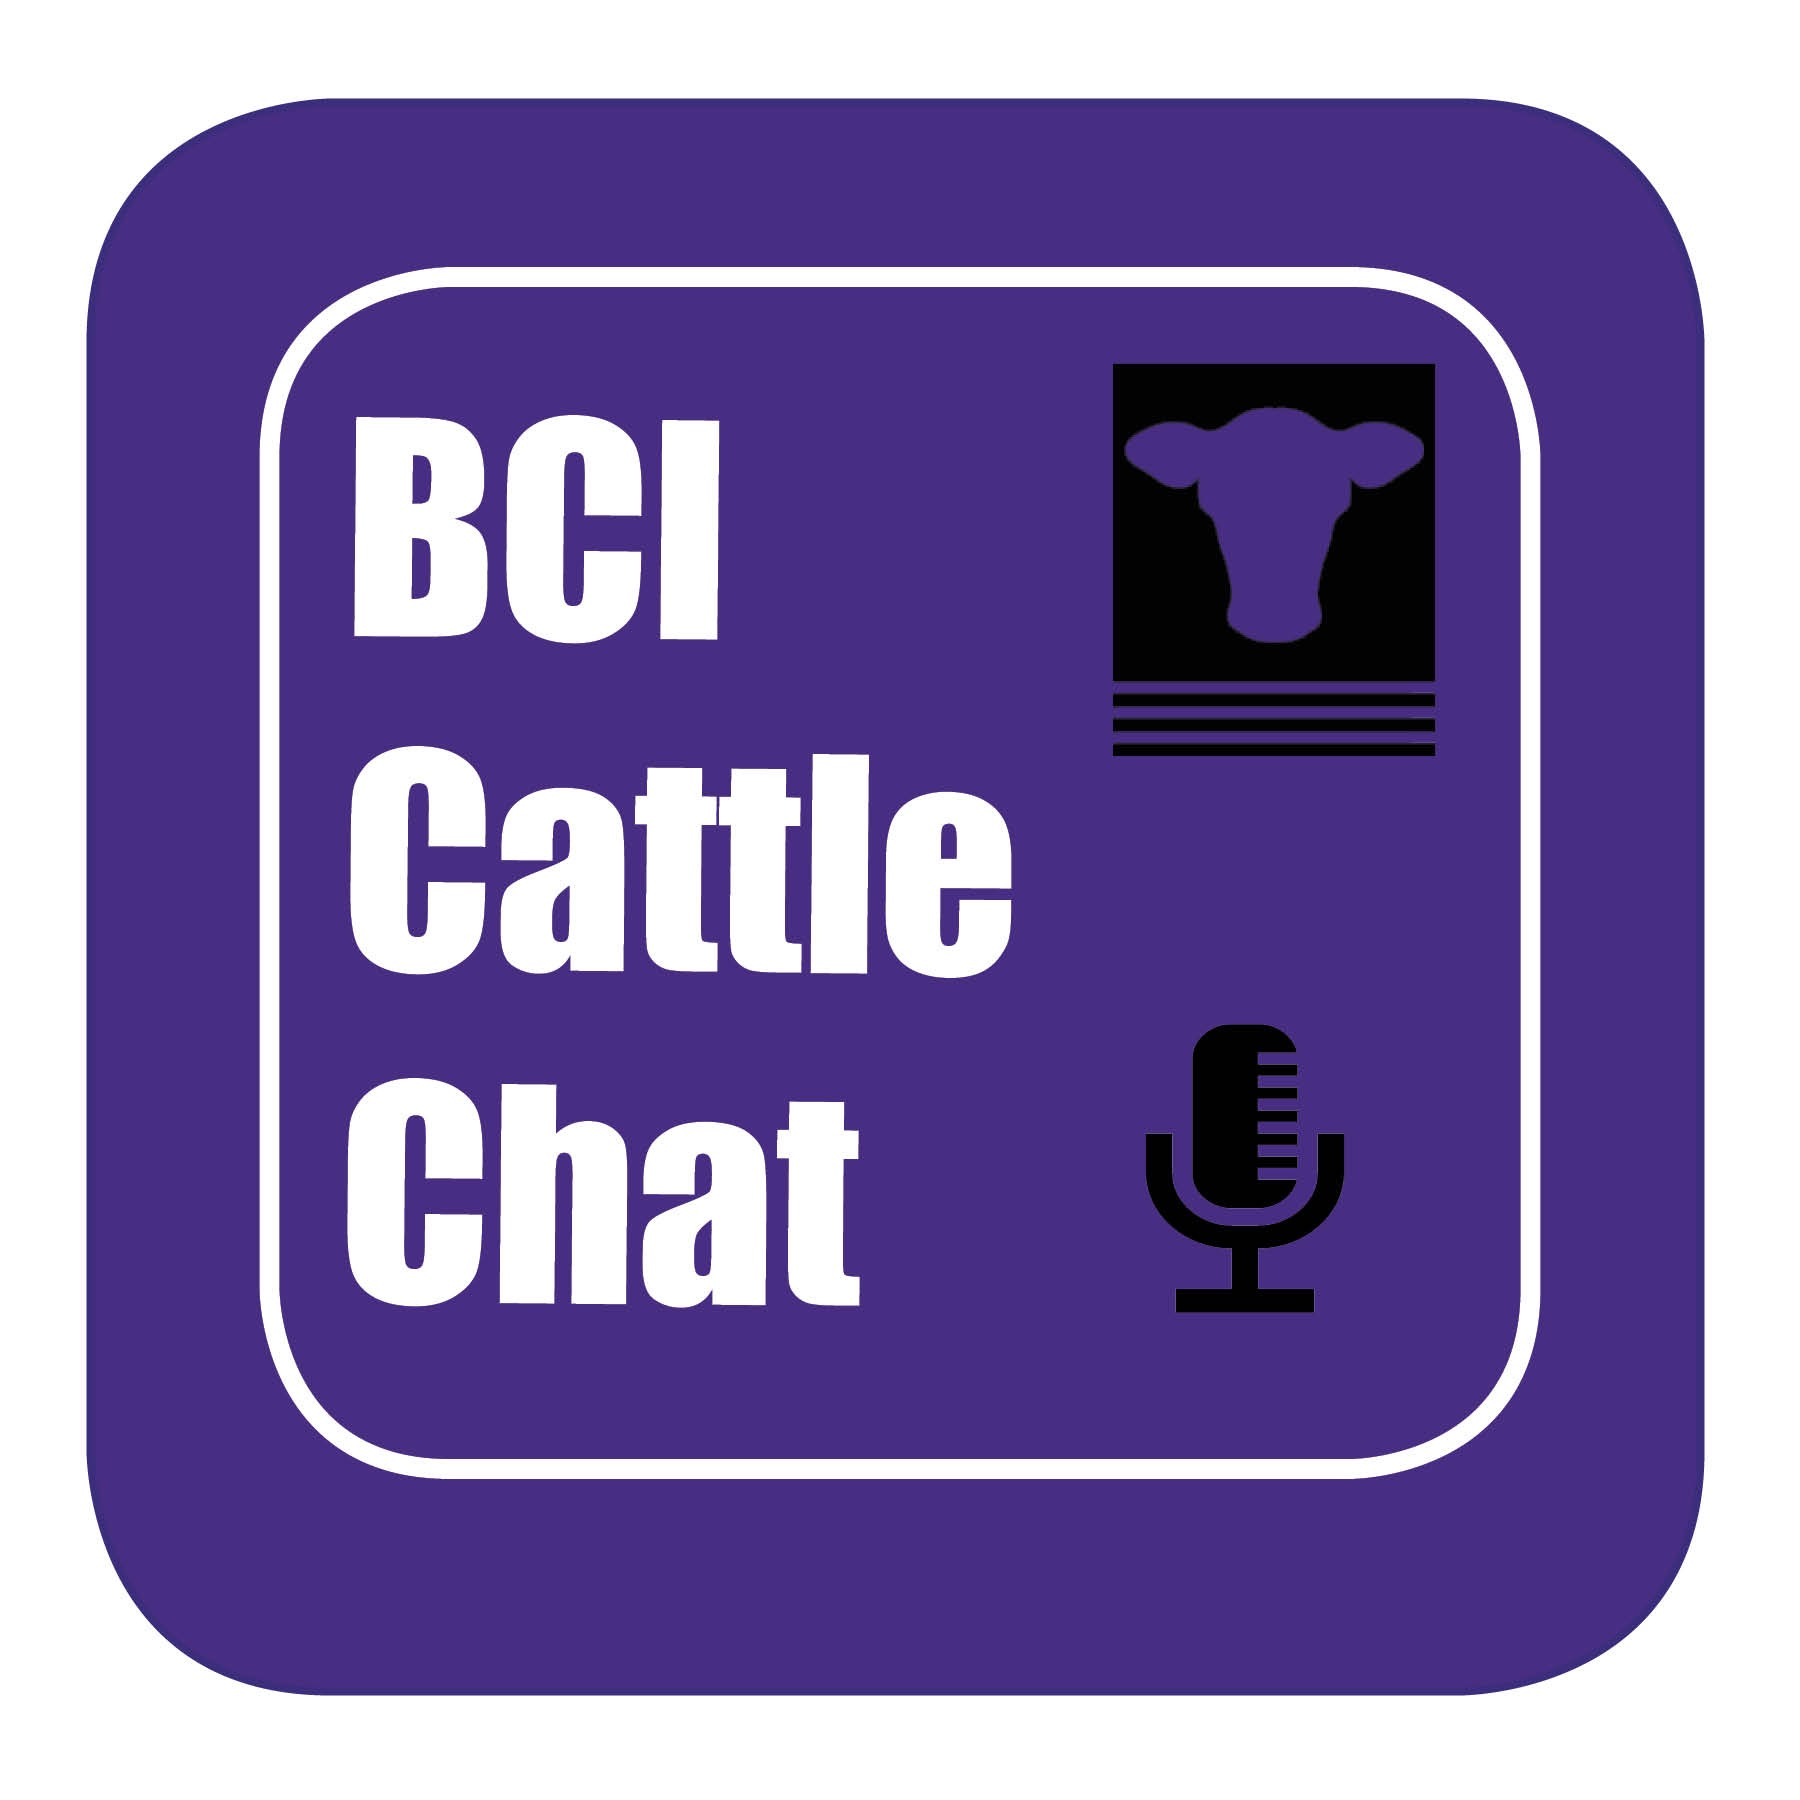 BCI Cattle Chat - Episode 26